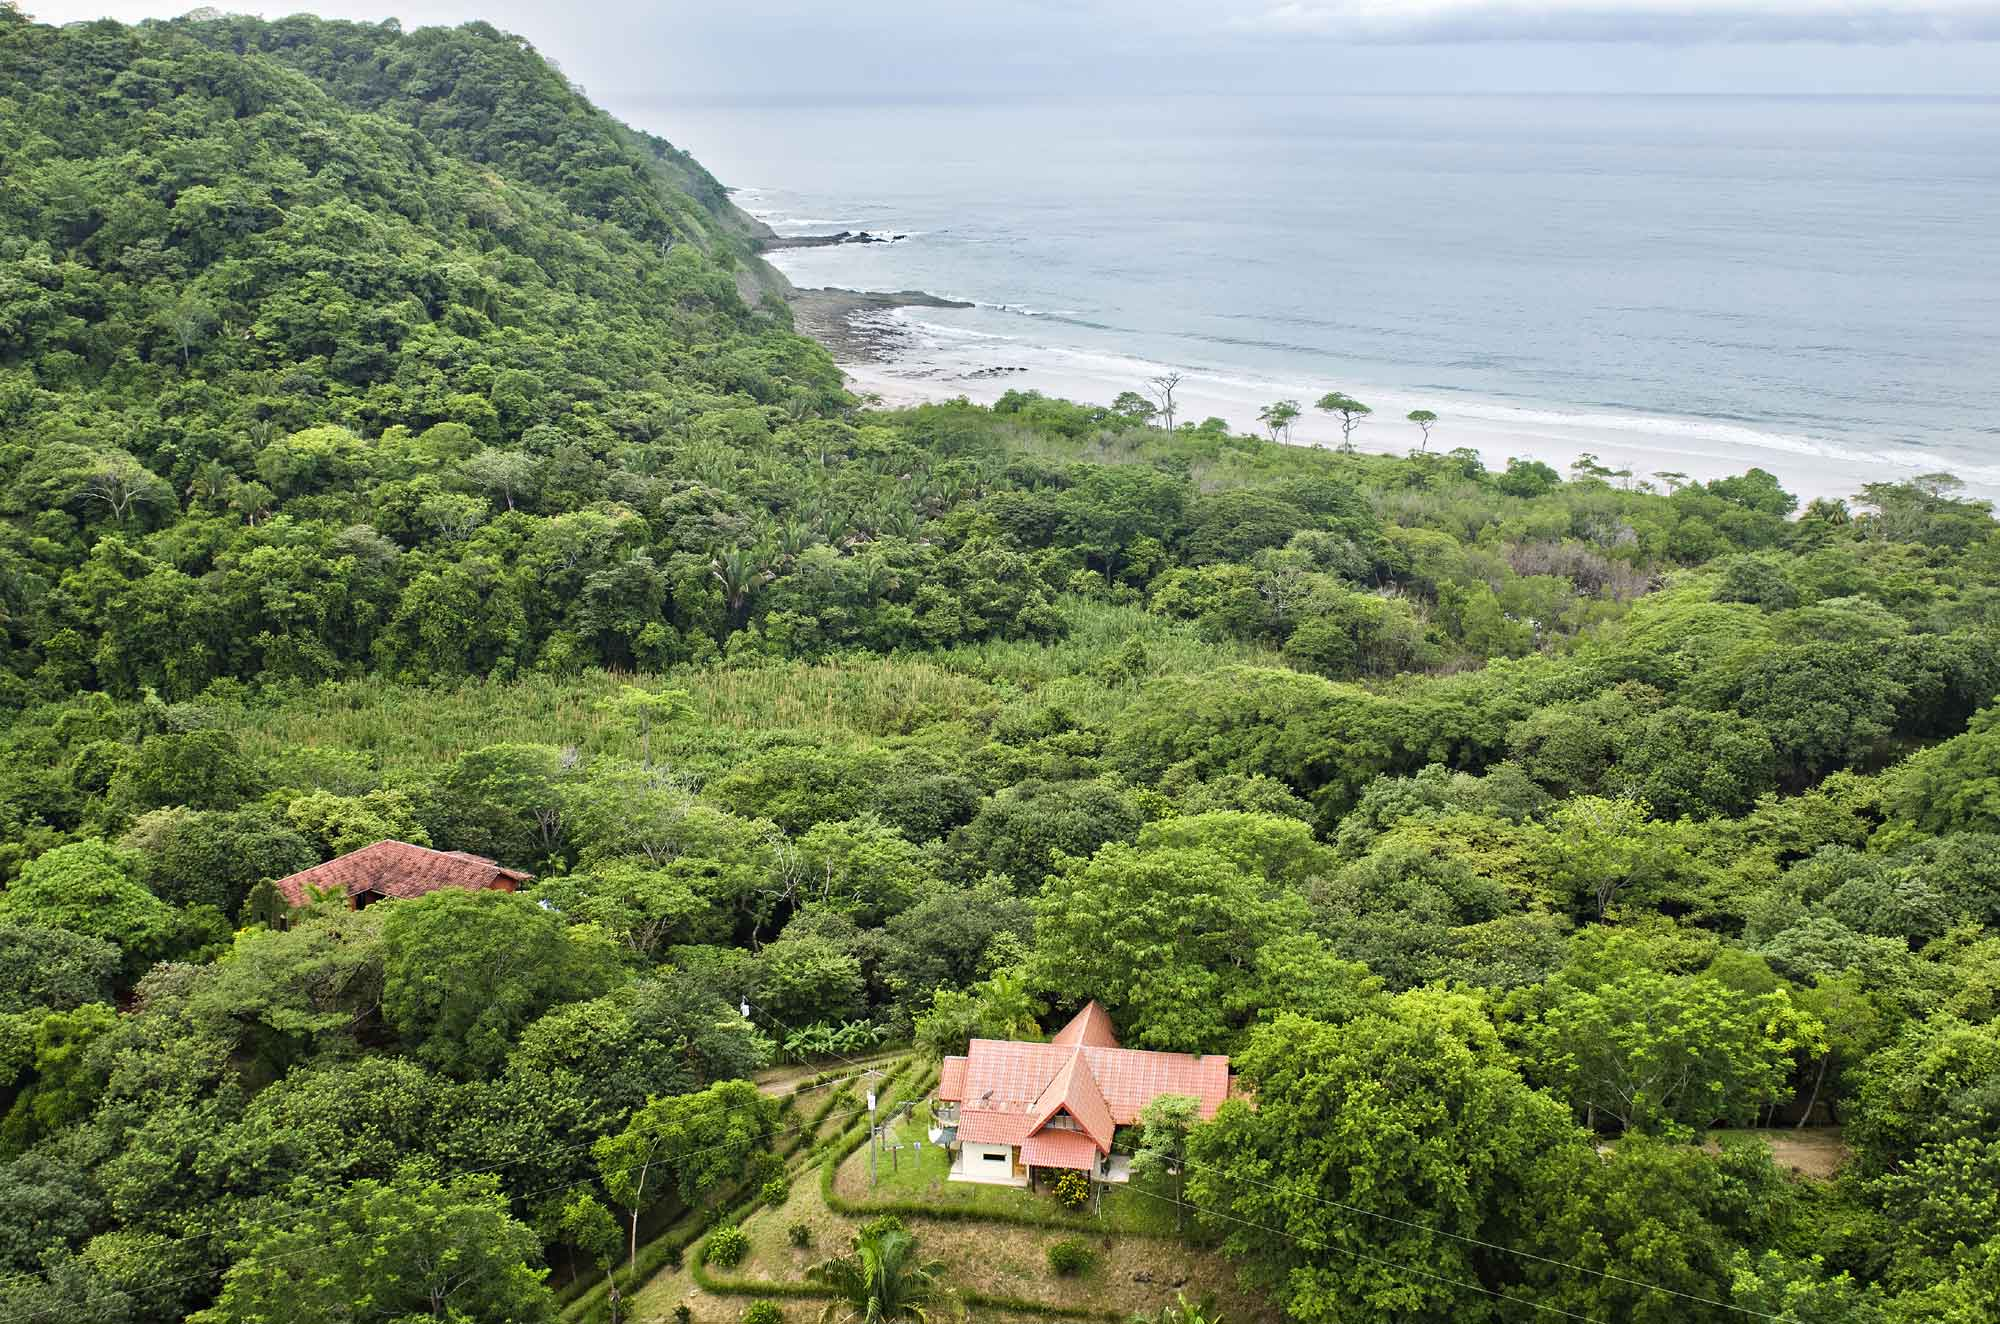 The sights and sounds of the jungle envelop Playa Barrigona, Mel Gibson's magnificent 403-acre estate on the Pacific coast of Costa Rica.